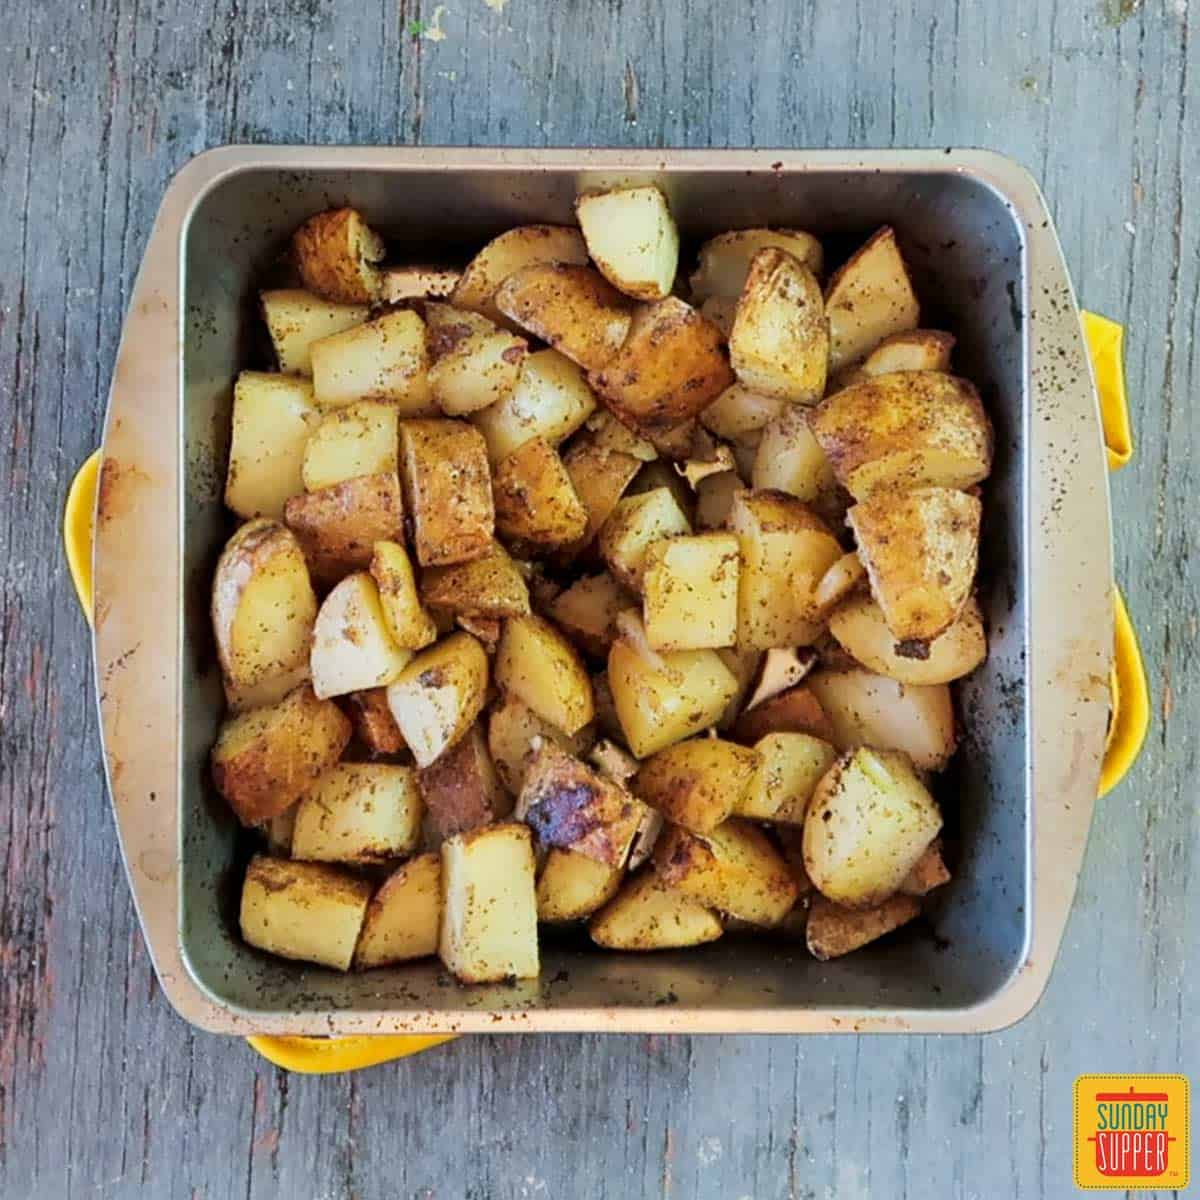 Grilled potatoes recipe fresh off the grill in the baking tin resting on an oven towel